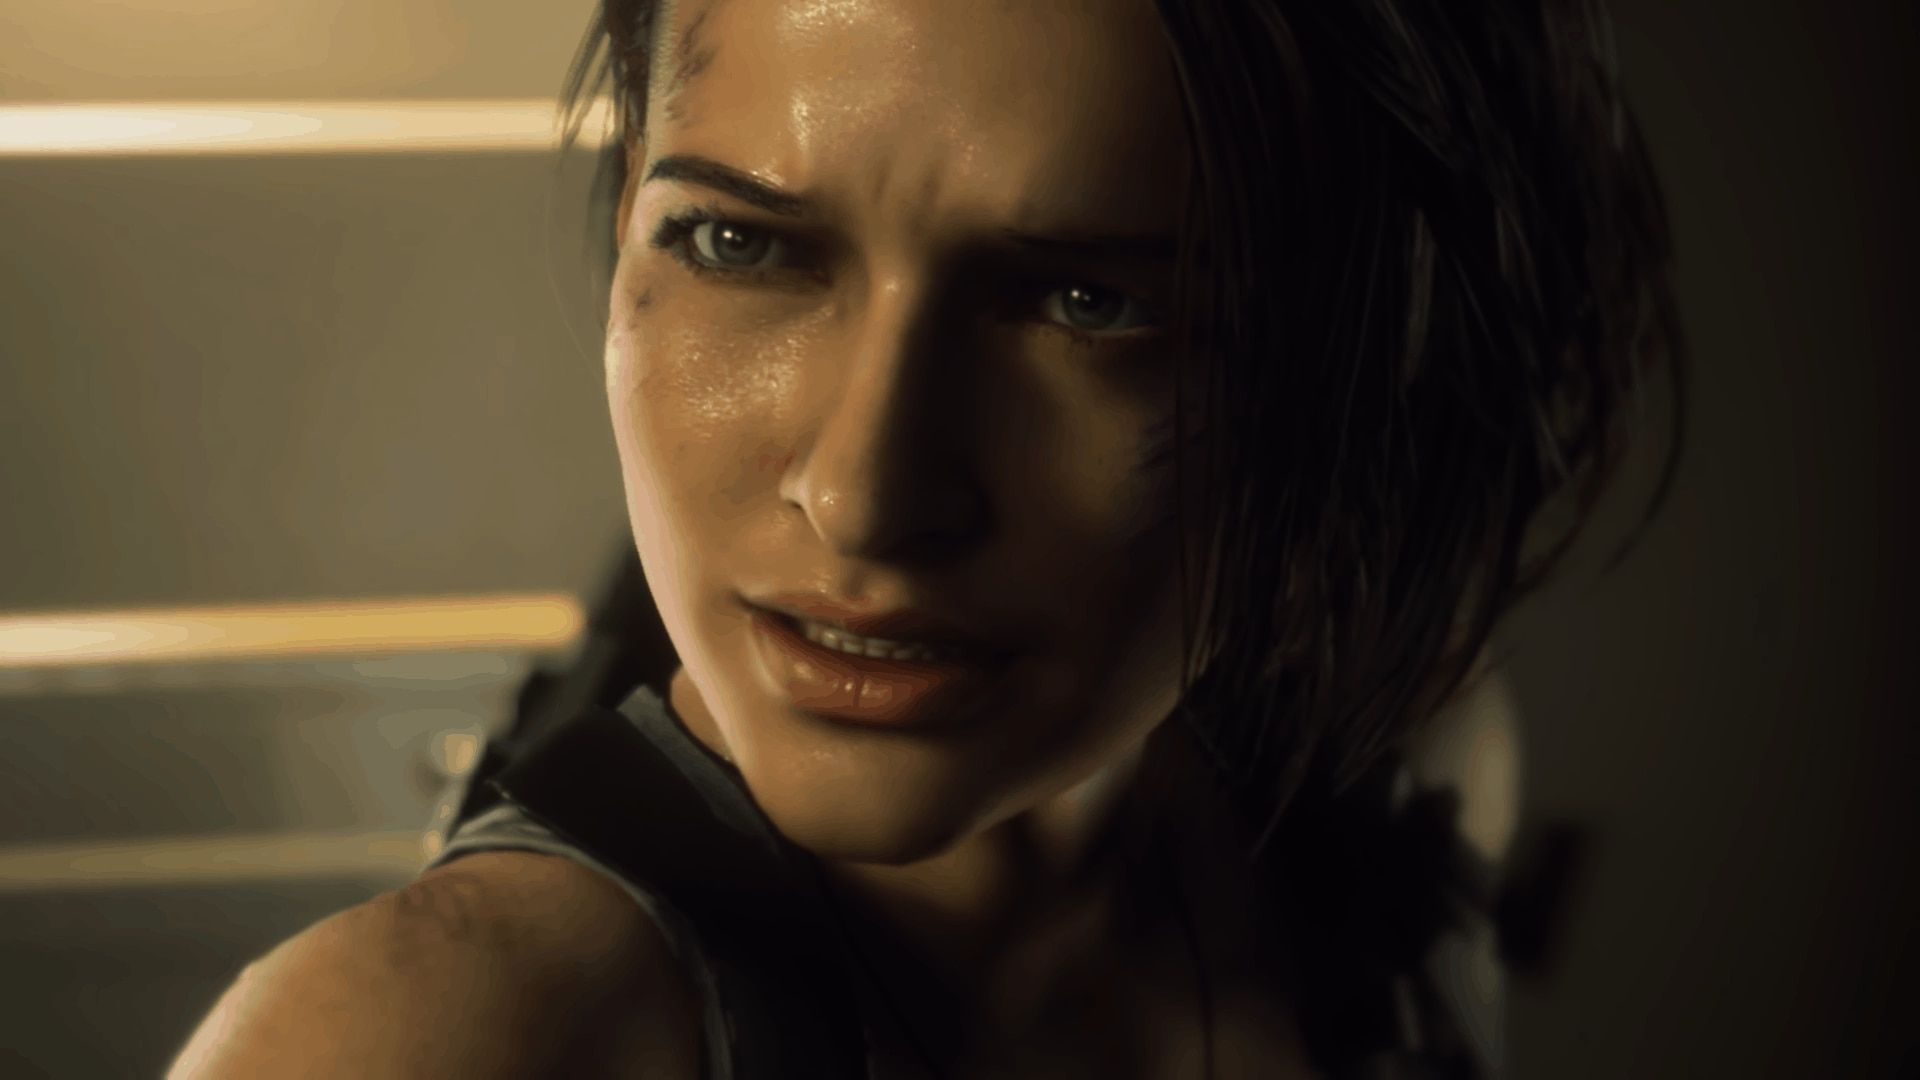 Resident Evil 3 - JILL JOINS RESISTANCE IN NEW RESIDENT EVIL 3 TRAILER